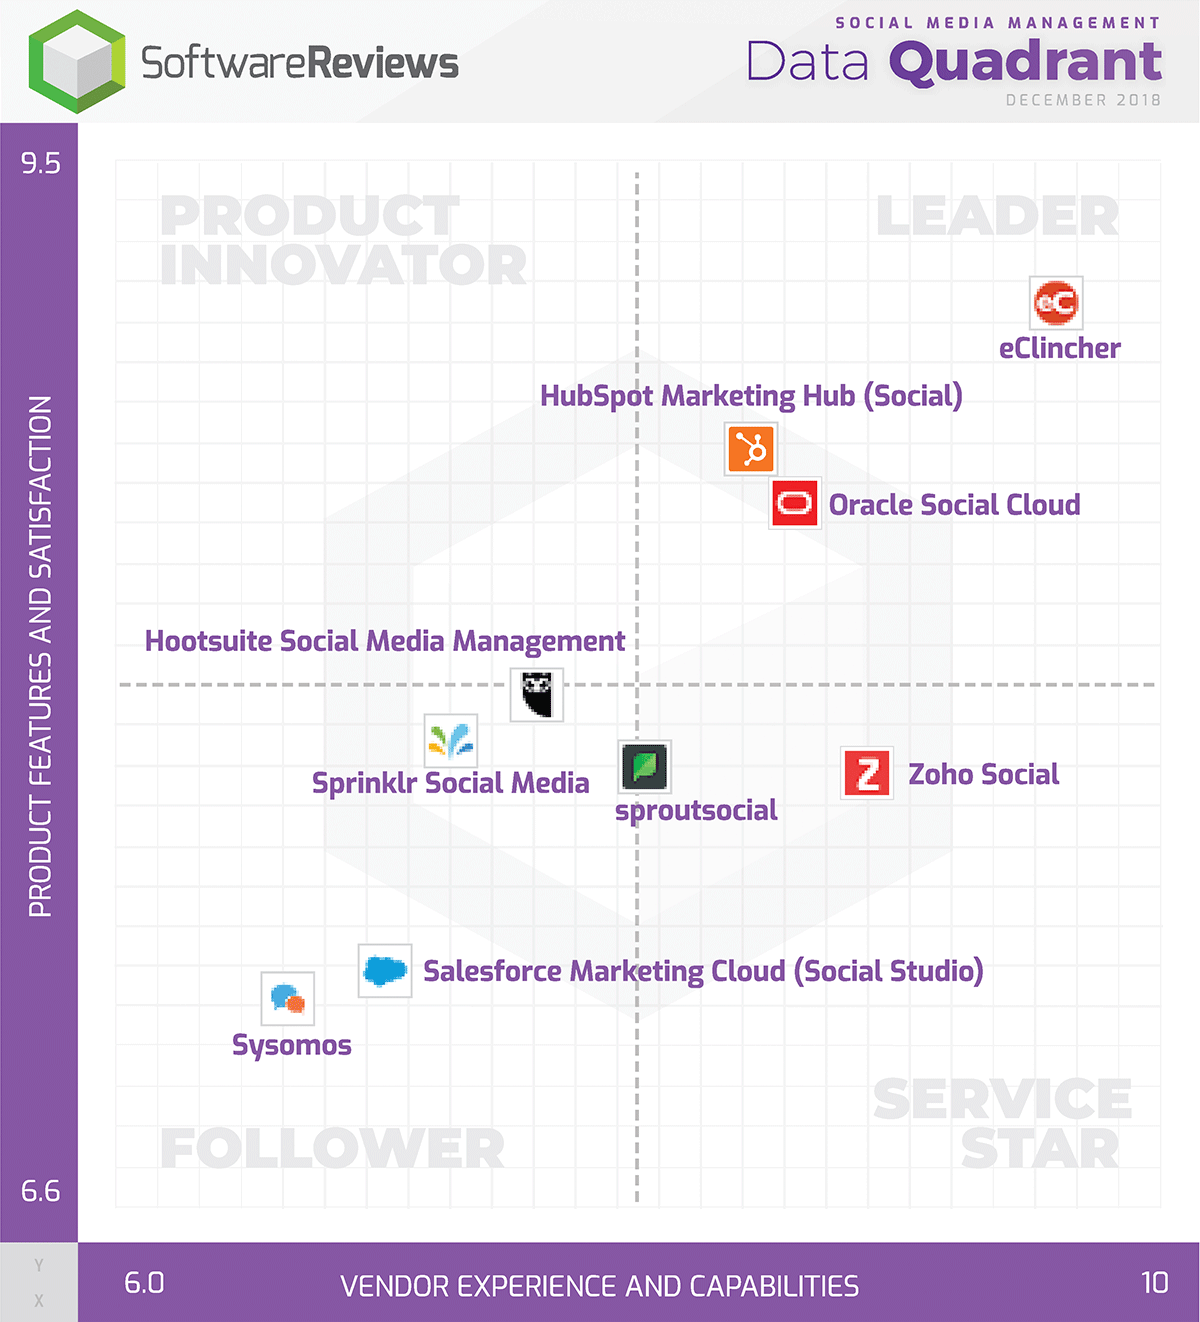 Social Media Management Data Quadrant